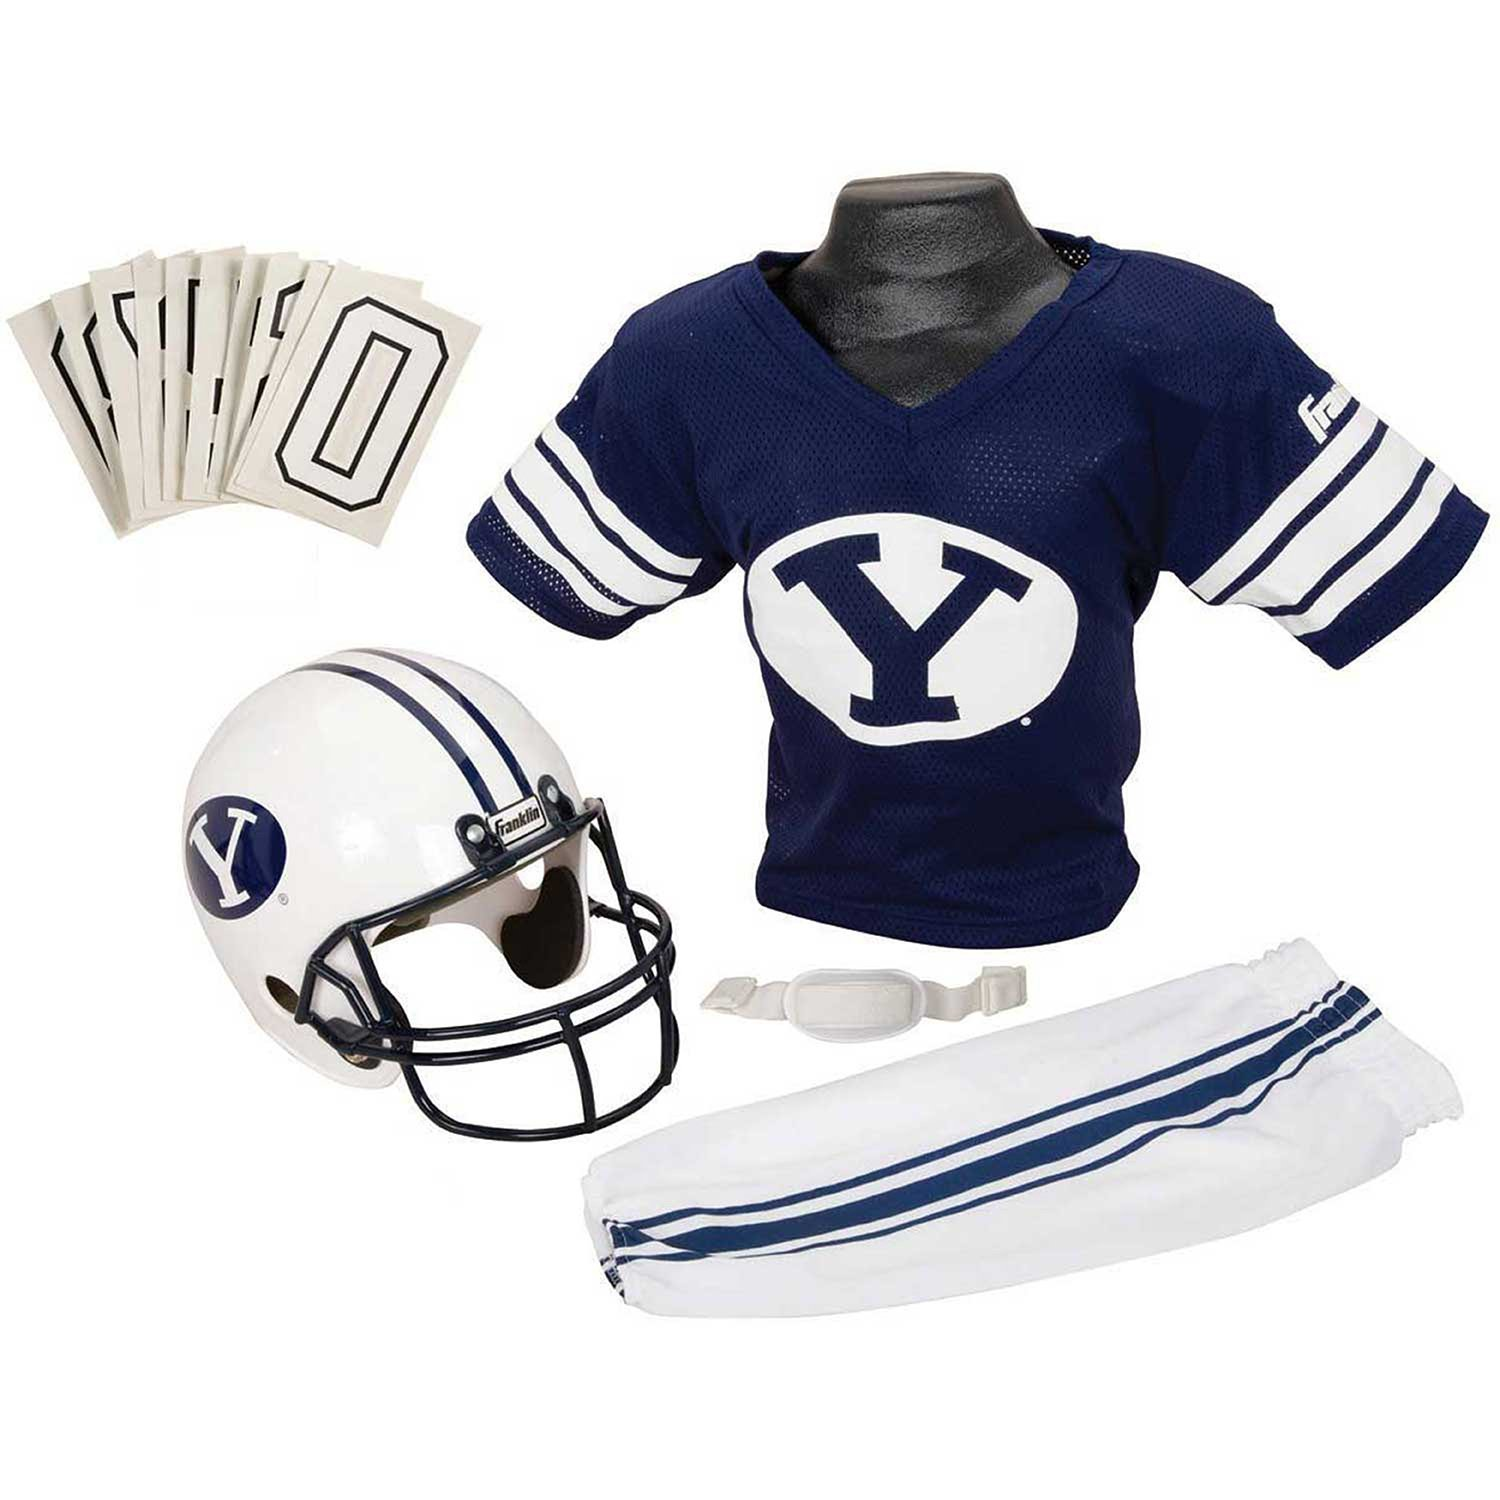 buy online 4a2e5 76618 Get Quotations · Franklin Sports NCAA Deluxe Youth Team Uniform Set